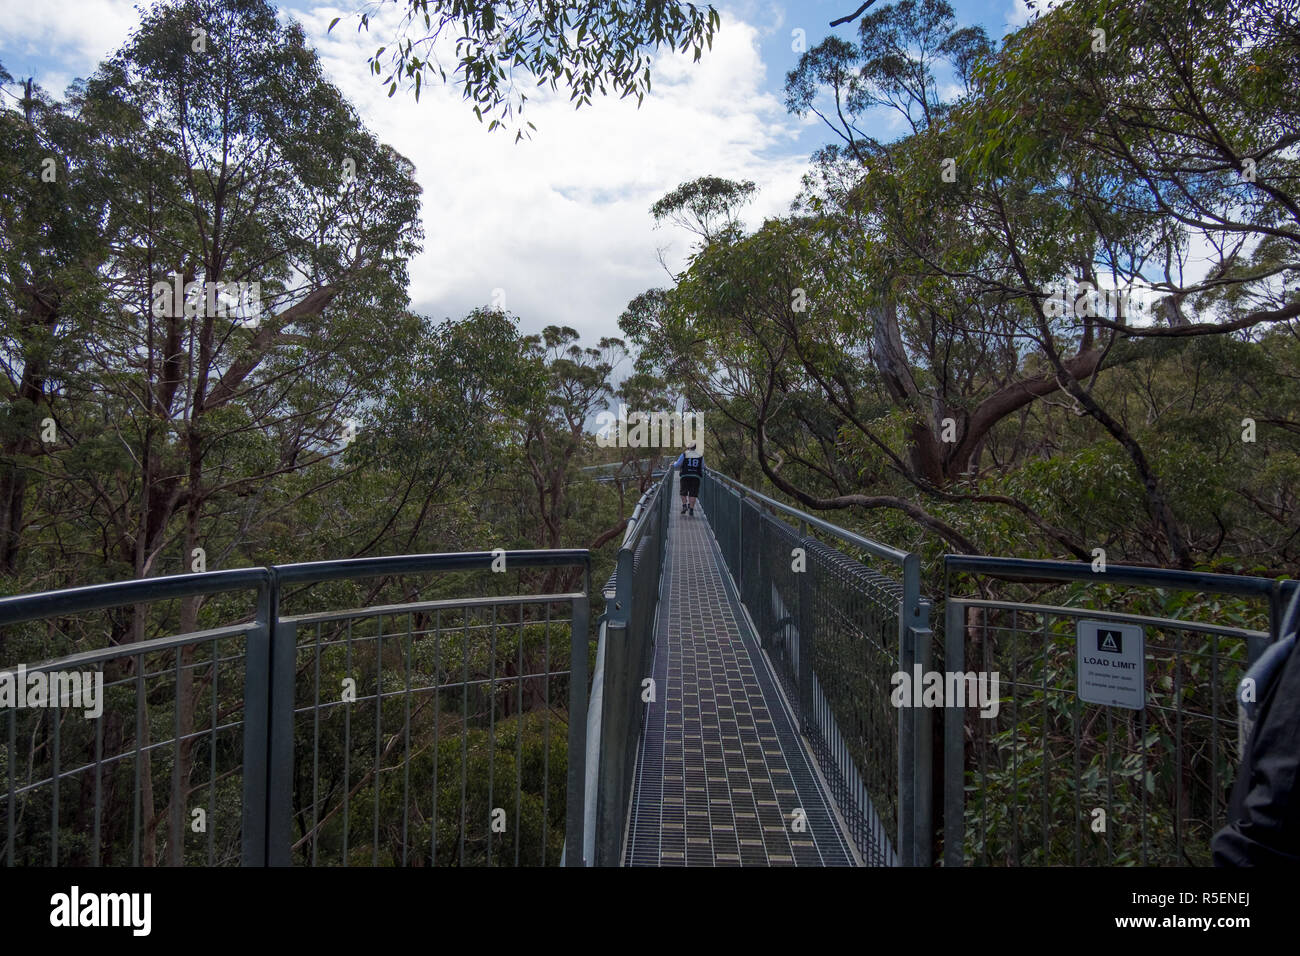 Enjoying the impressive metal walkway through the tingle trees at Valley of the Giants Tree Top Walk in Tingdale, Western Australia. - Stock Image